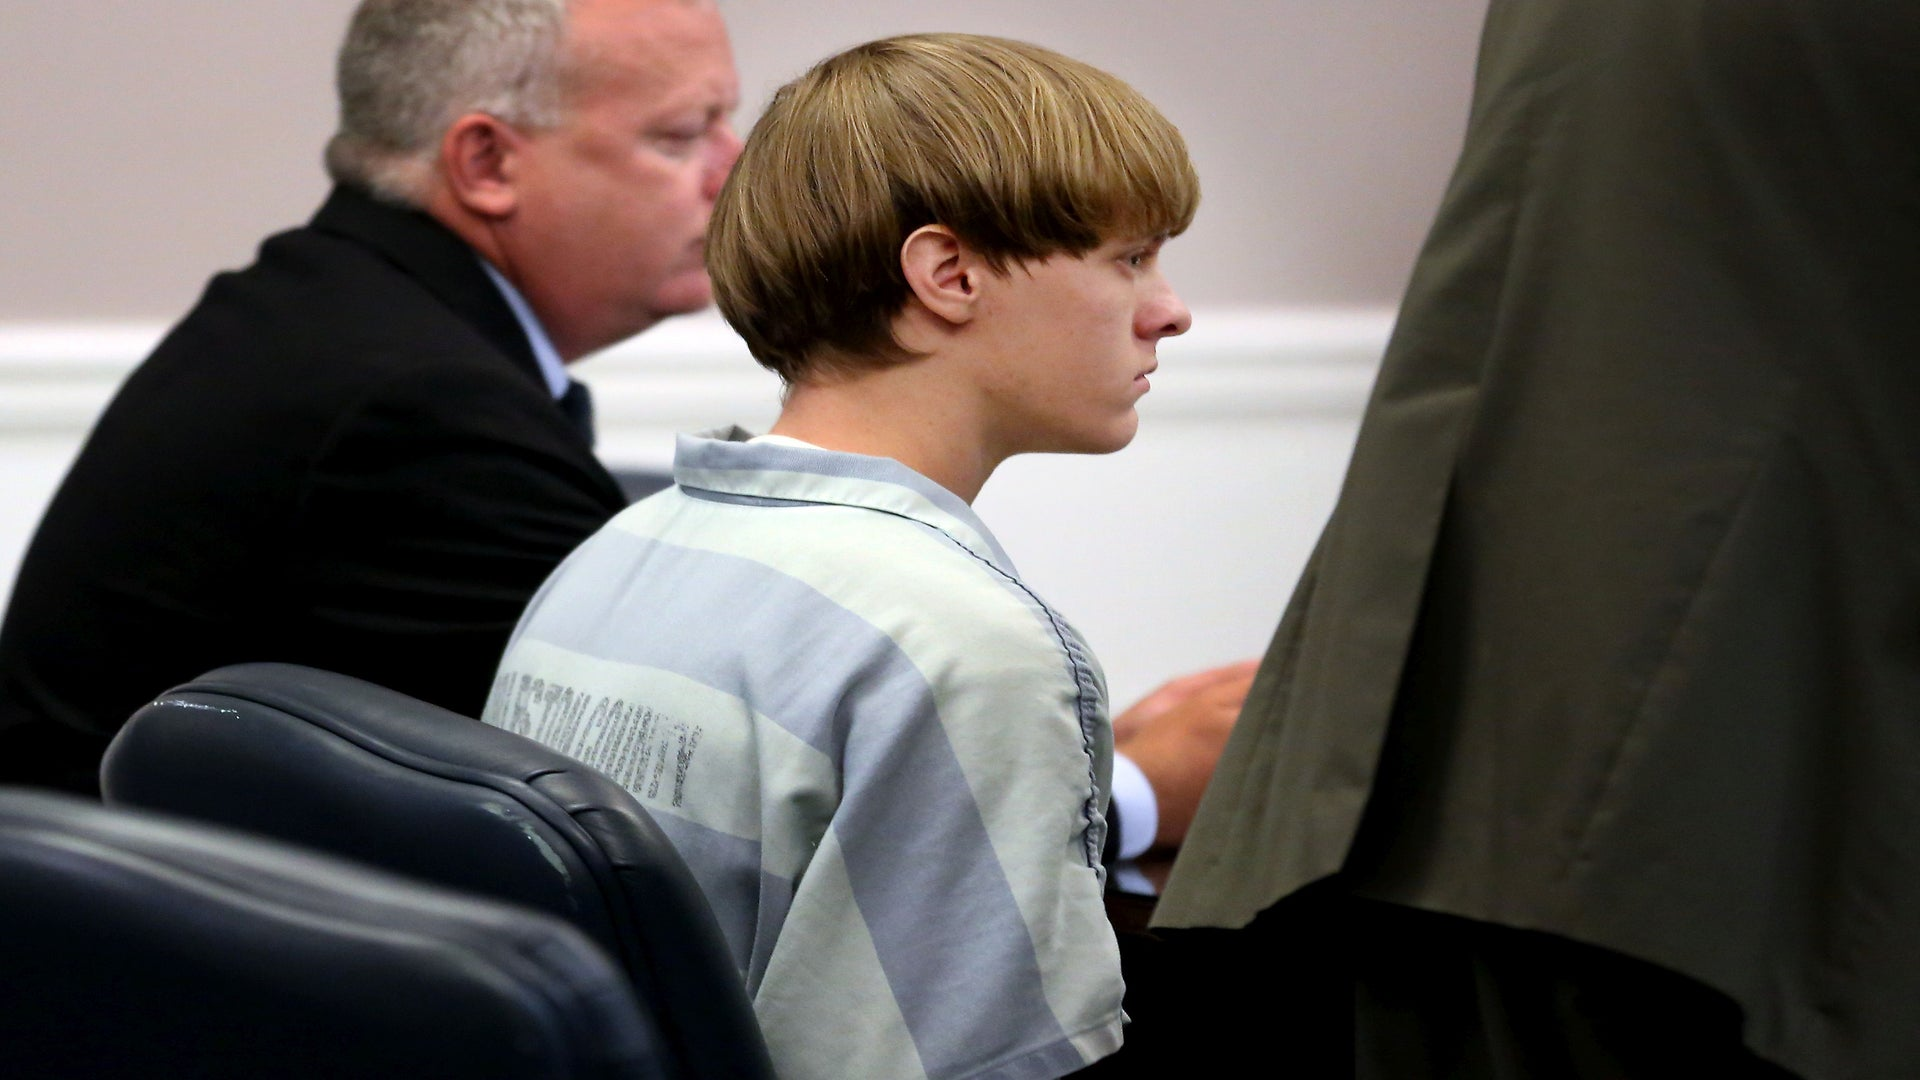 Dylann Roof Is Wearing Shoes With Racist Symbols Drawn On Them